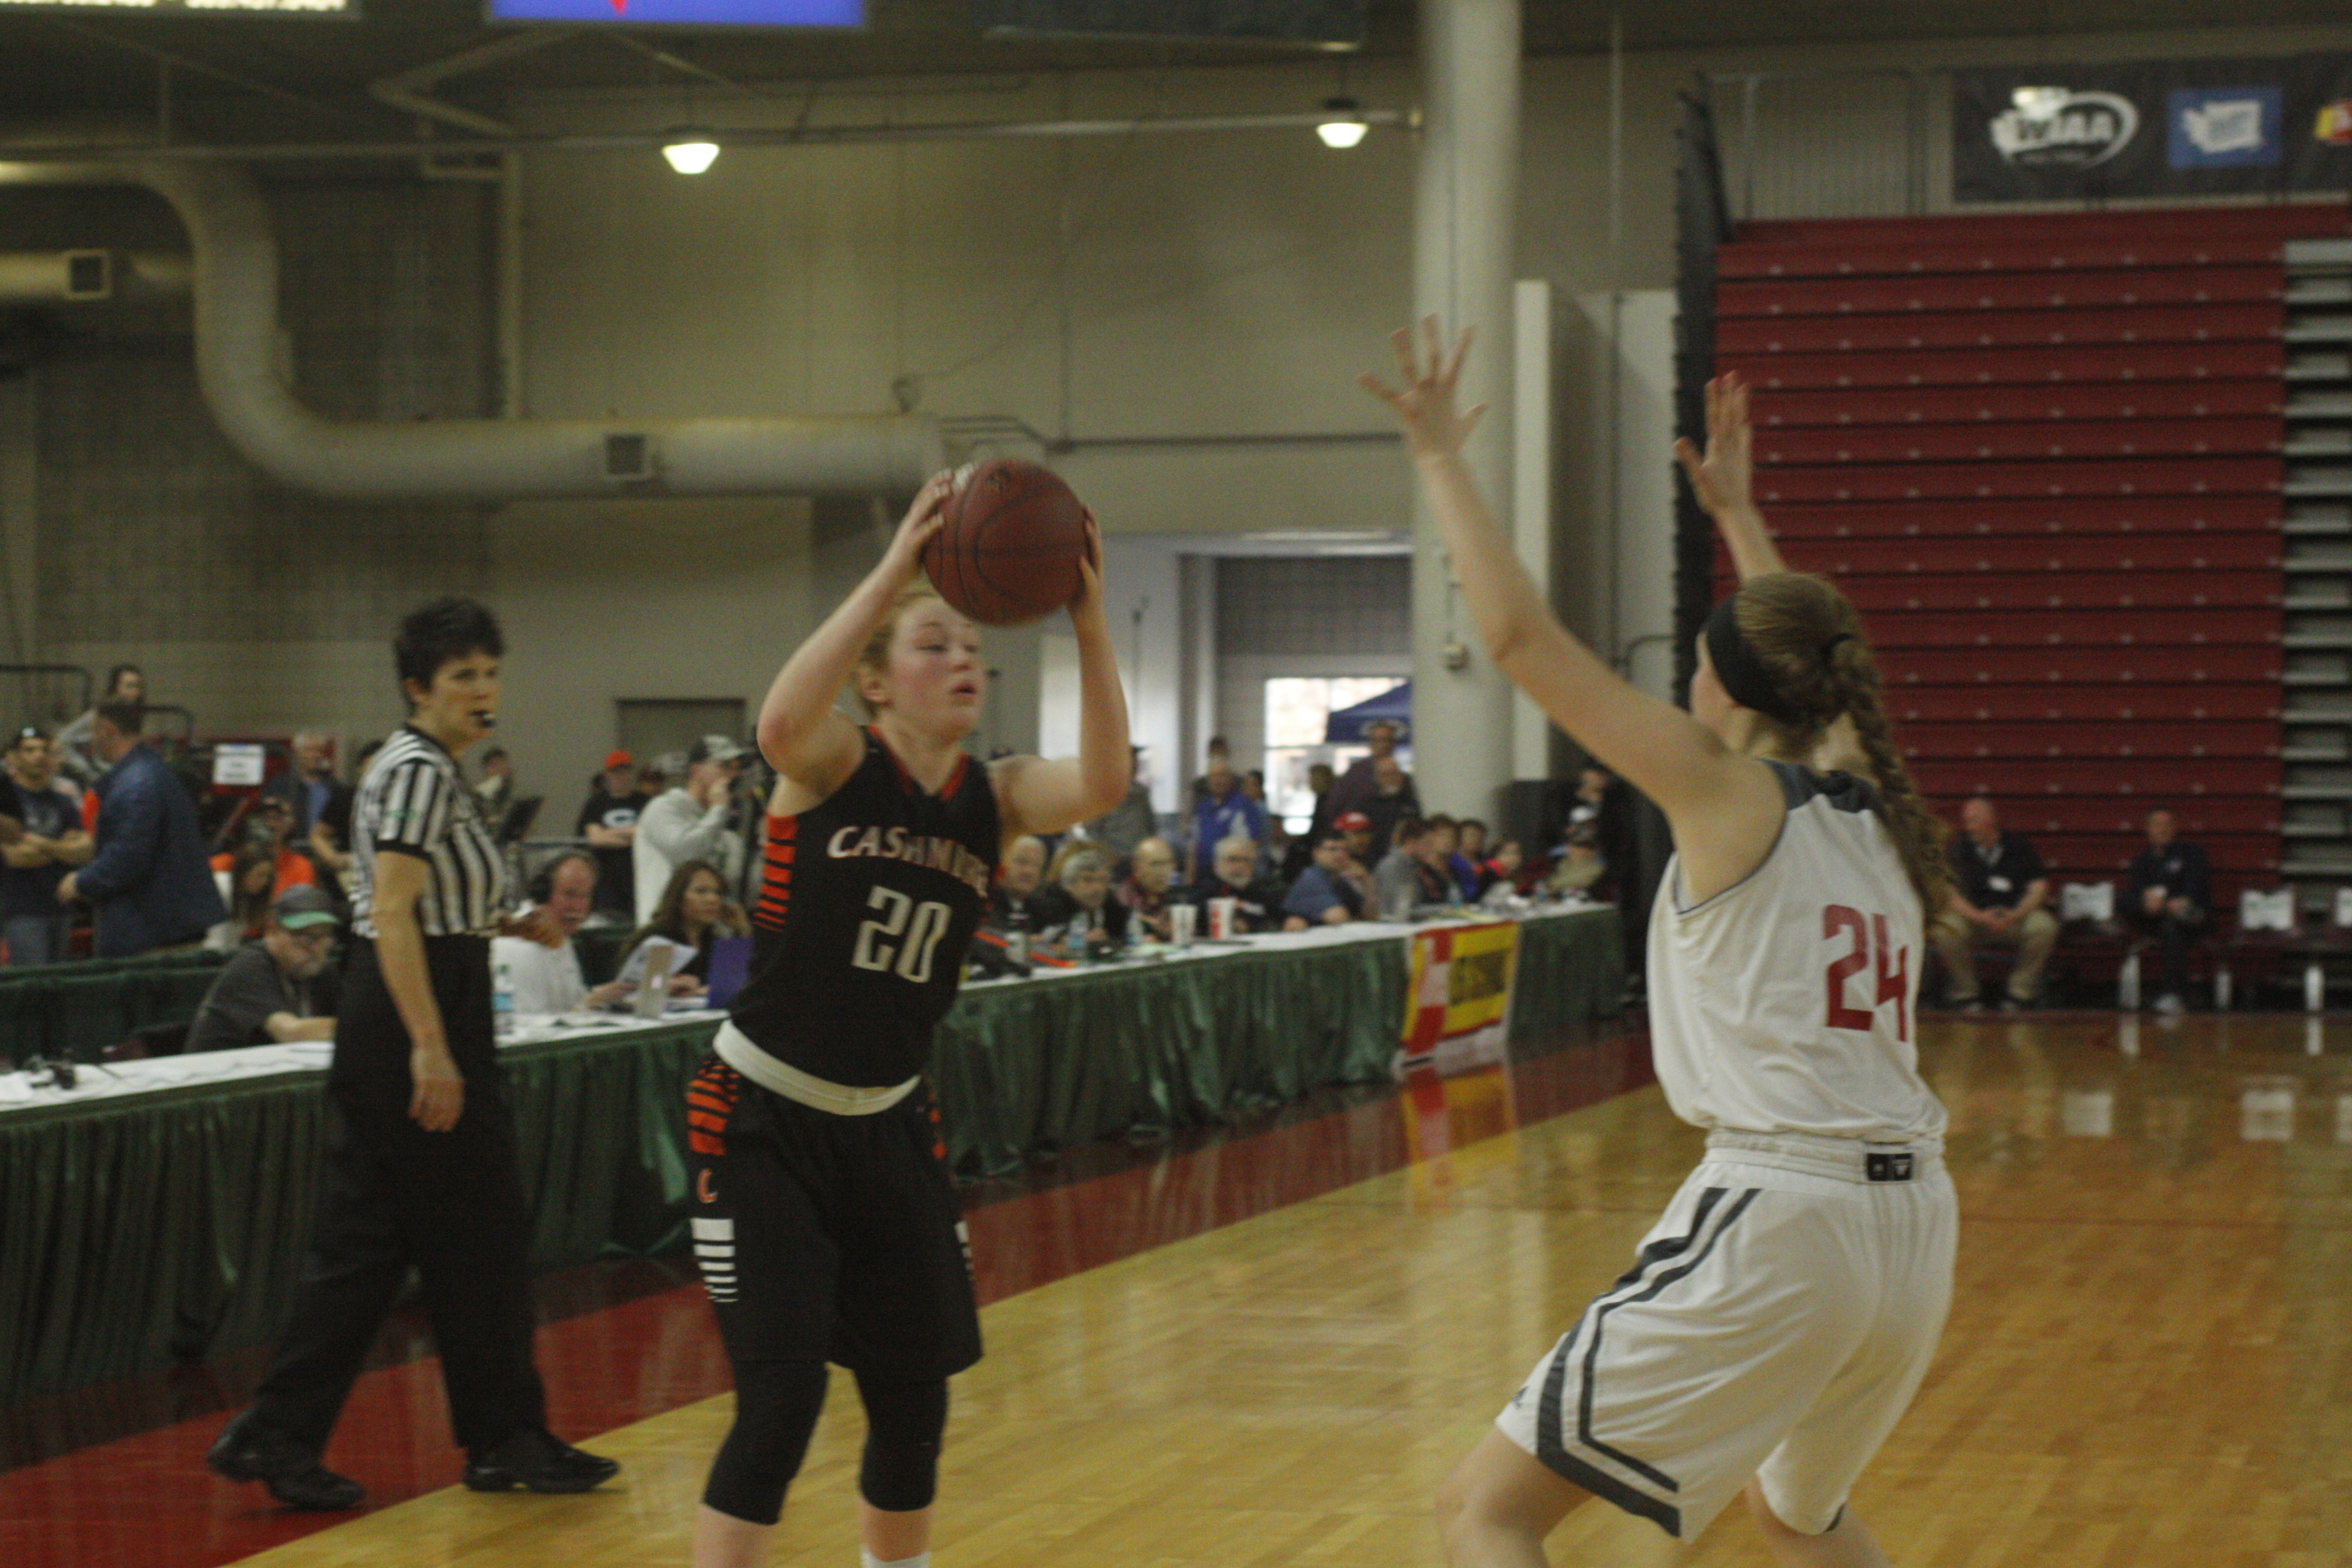 Knishka, looking to pass in the game against Mount Baker on Saturday, March 4. Cashmere lost the last game 45-44.